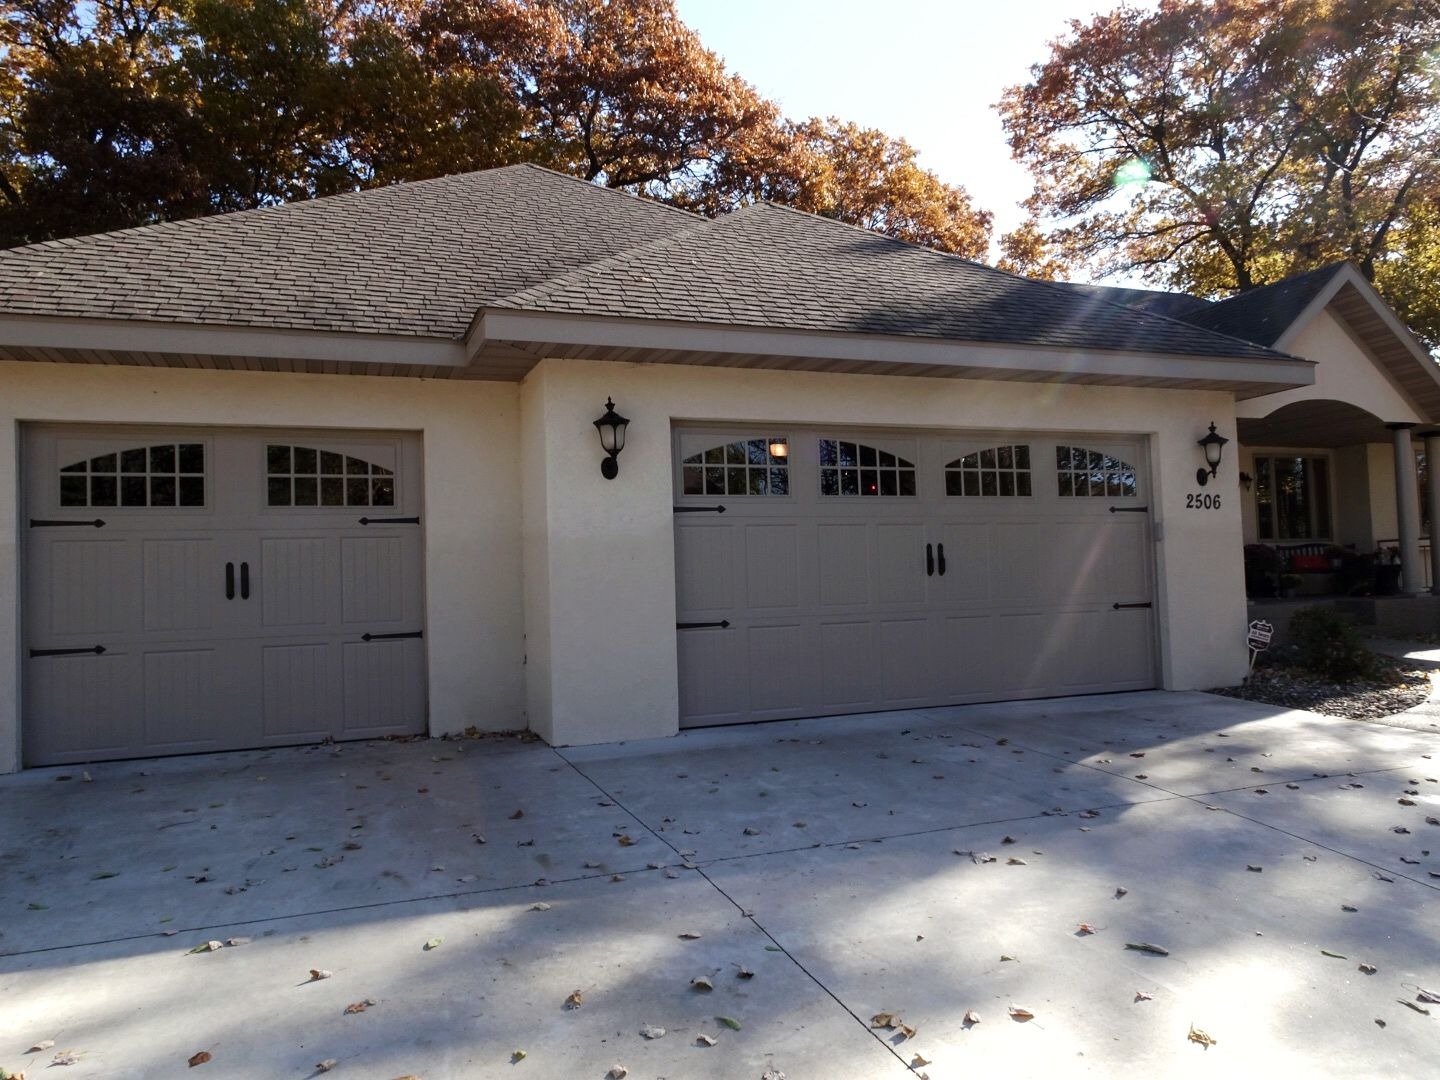 Amarr Classica Garage Door In Sandtone With Tuscany Panels And